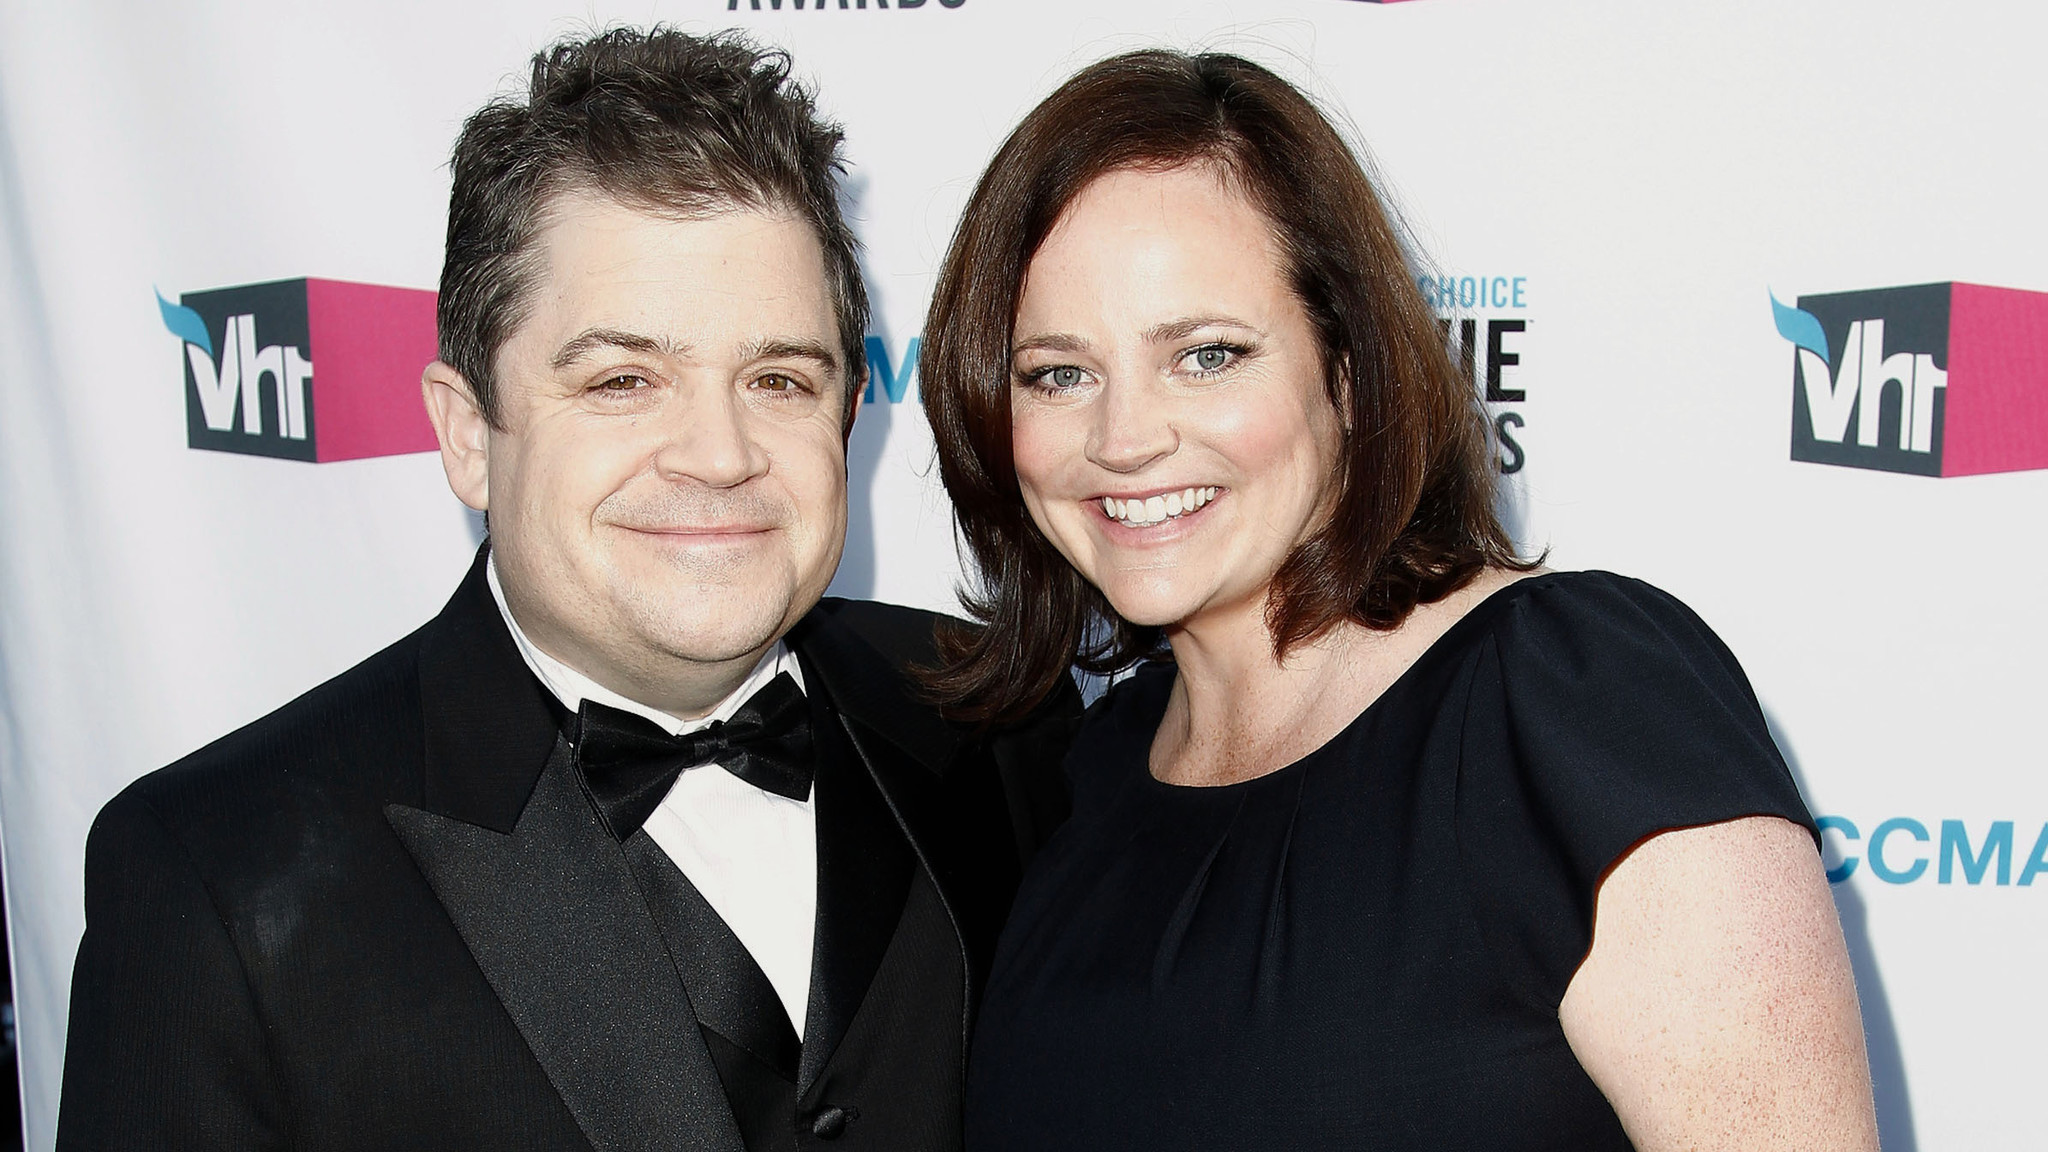 The book Michelle McNamara, Patton Oswalt's wife, was ...Michelle Mcnamara